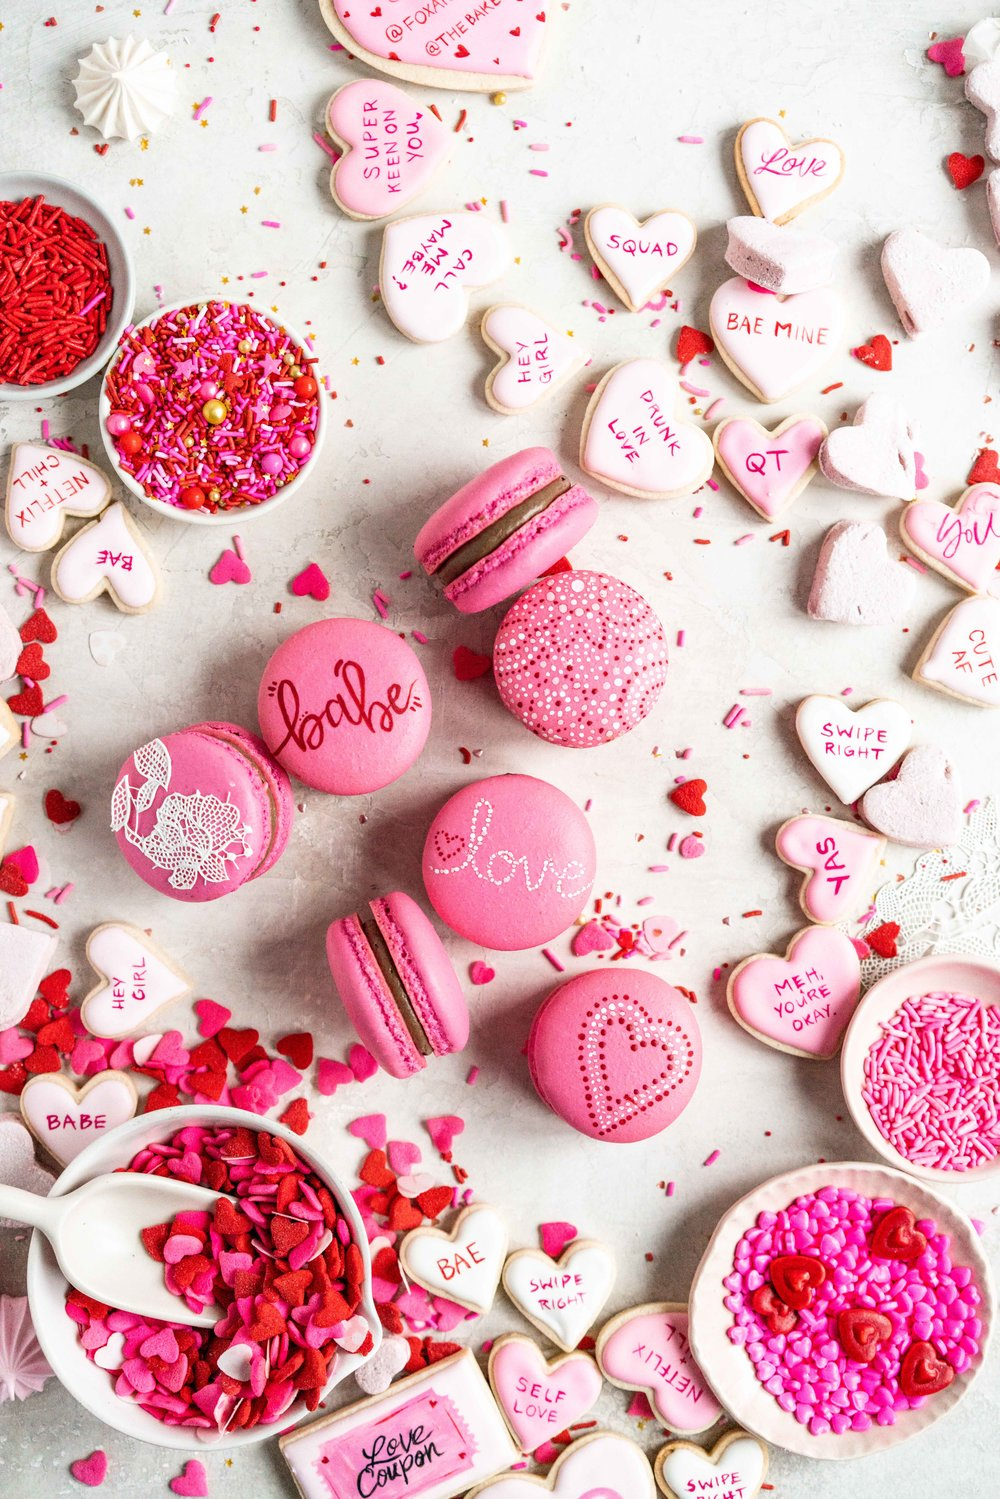 The Ultimate Valentine's Day treat box - a perfect mix of cookies and sweet treats to help celebrate valentine's day or the ones you love. This would make the most amazing gift - we included macarons, painted sugar cookies, linzer cookies, chocolate sandwich cookies, meringue kisses, soft earl grey caramels, and marshmallow hearts. #valentinesday #cookiebox